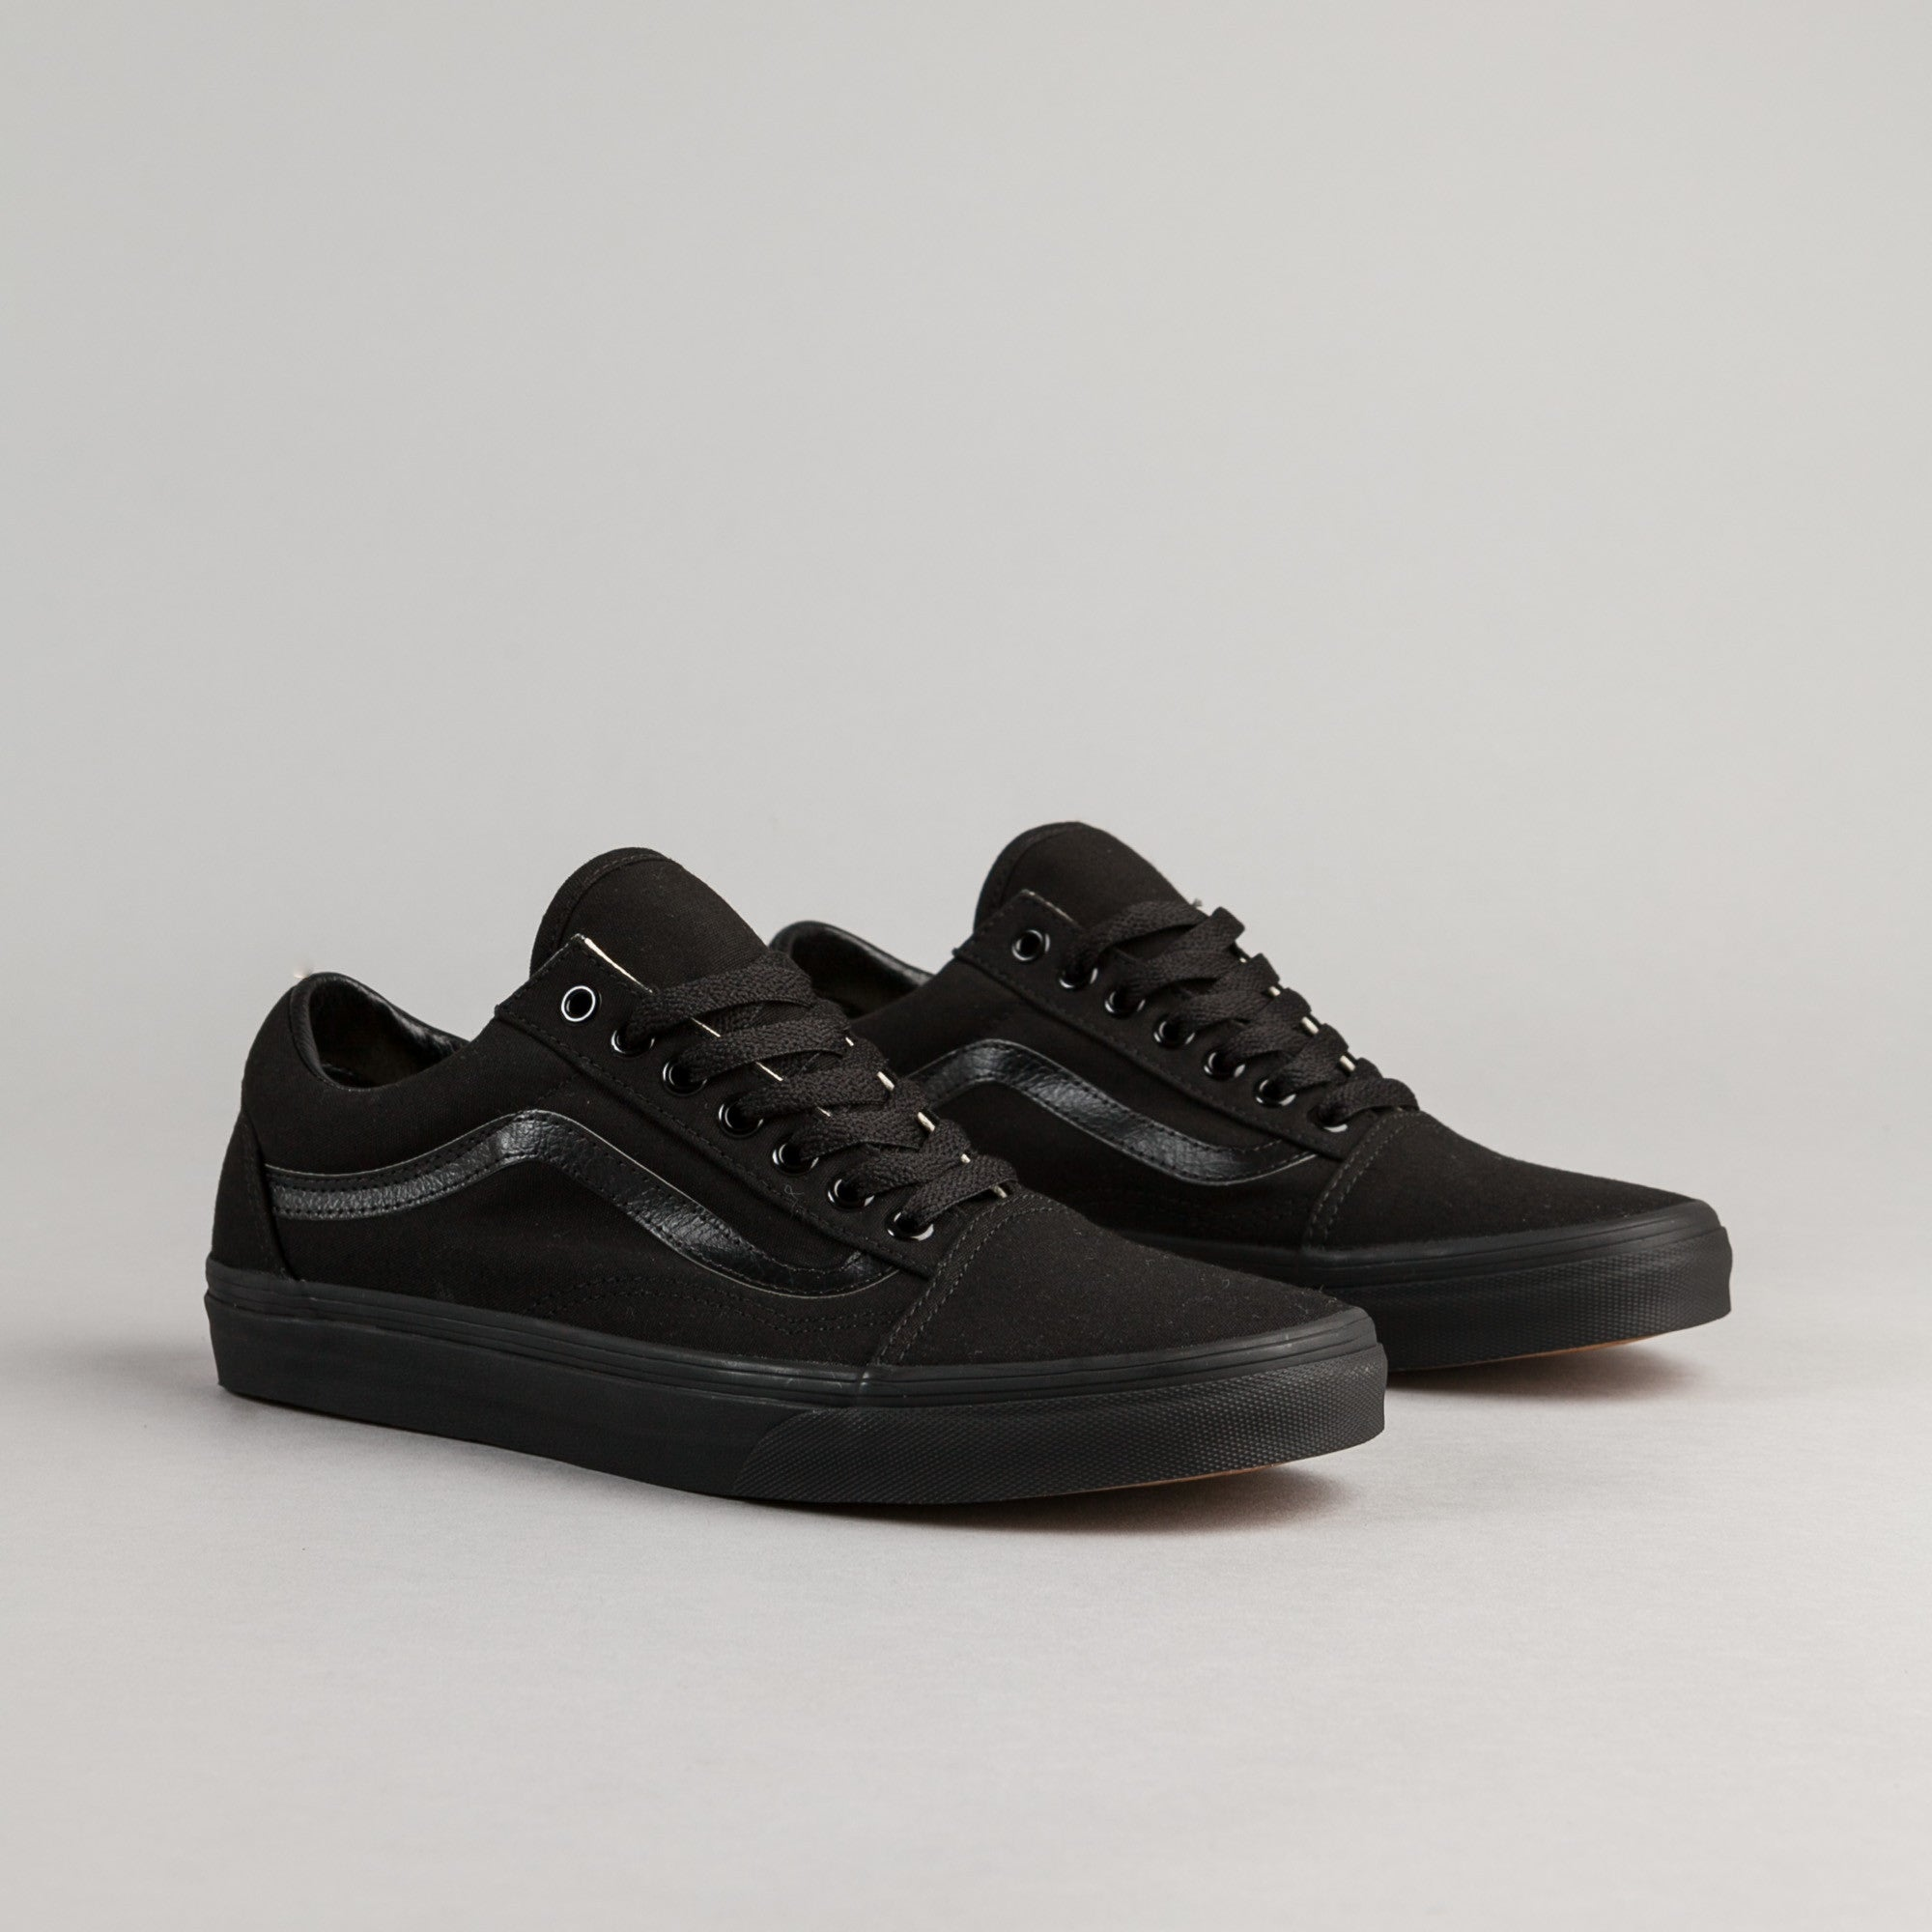 vans old skool shoes black black canvas flatspot. Black Bedroom Furniture Sets. Home Design Ideas